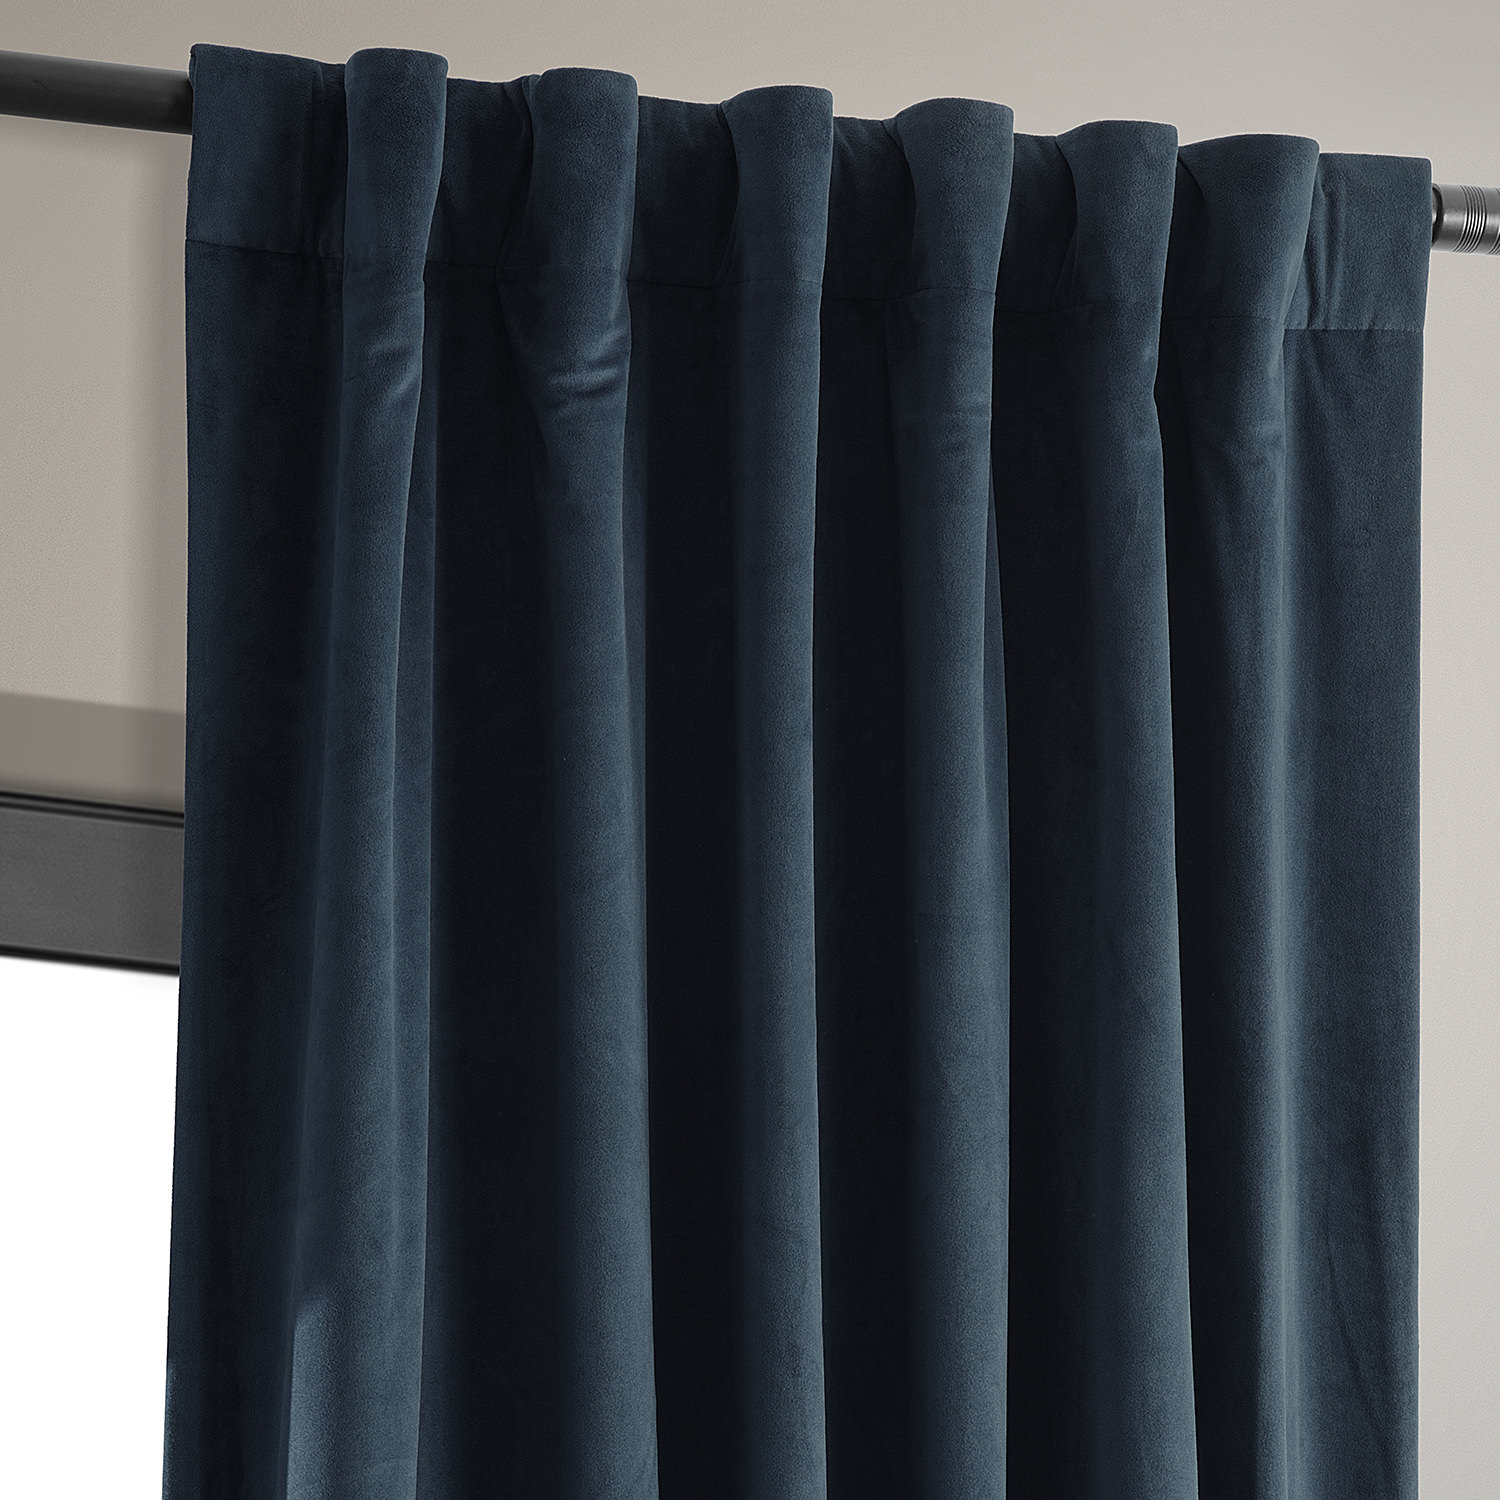 Signature Midnight Blue Blackout Velvet Curtains